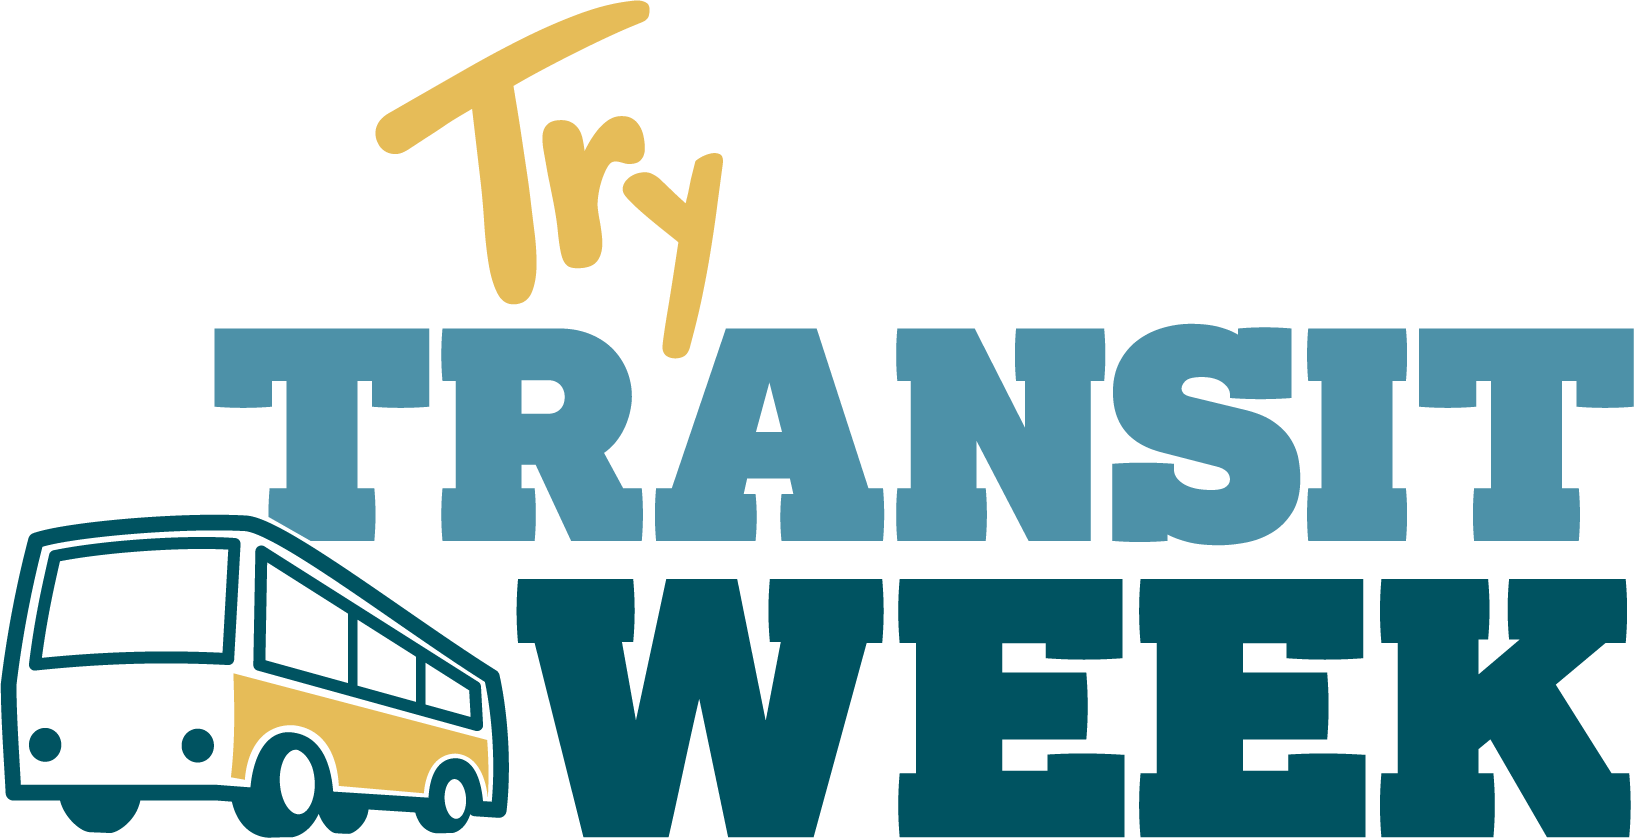 Try Transit Week Logo